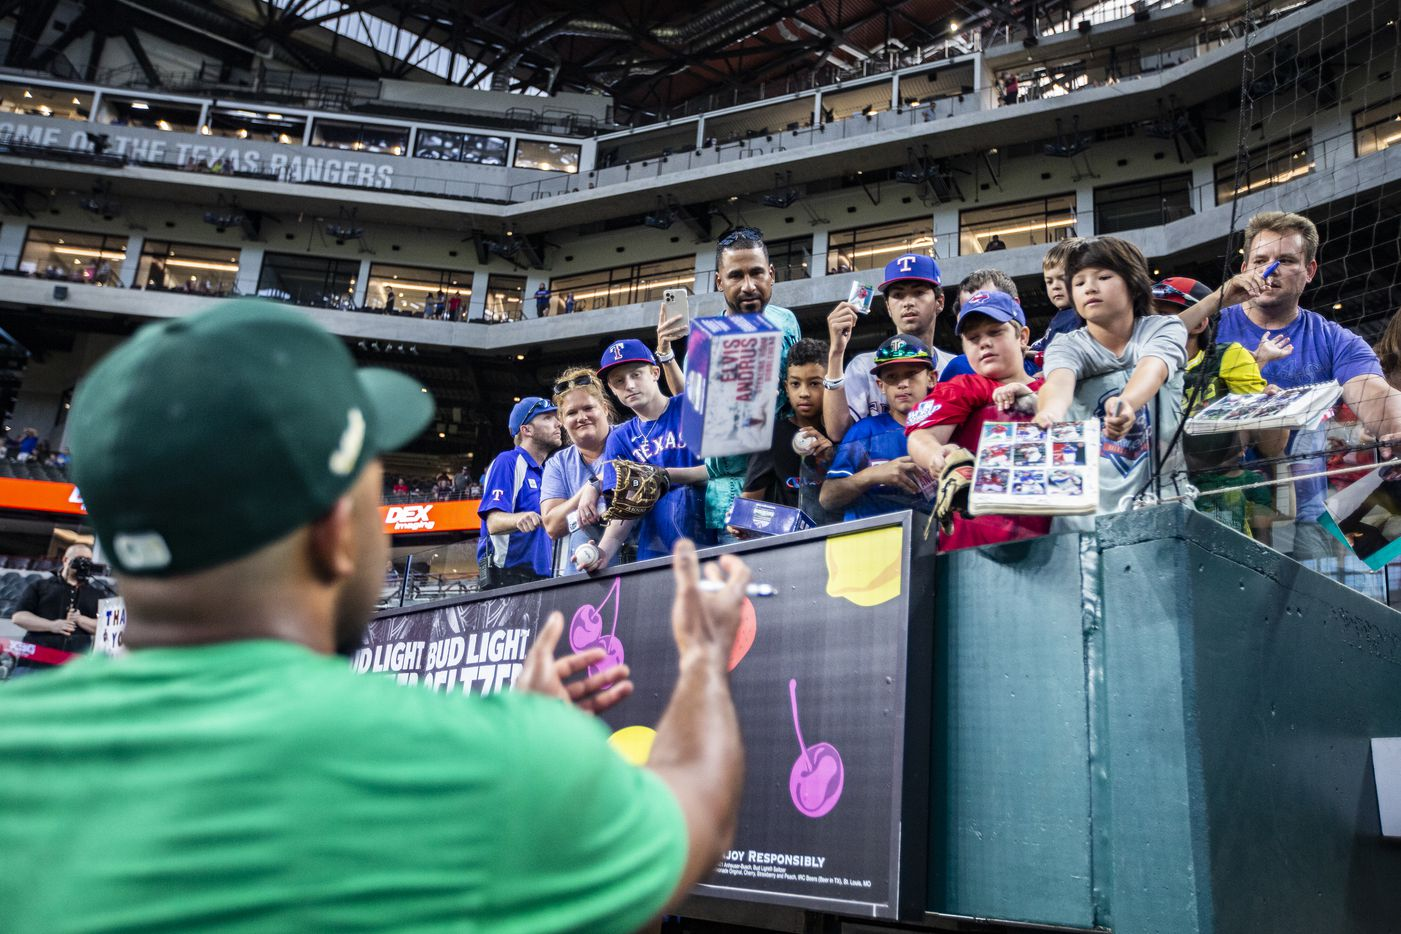 Oakland Athletics shortstop Elvis Andrus autographs memorabilia for fans before a game against the Texas Rangers in Arlington, Monday, June 21, 2021. (Brandon Wade/Special Contributor)